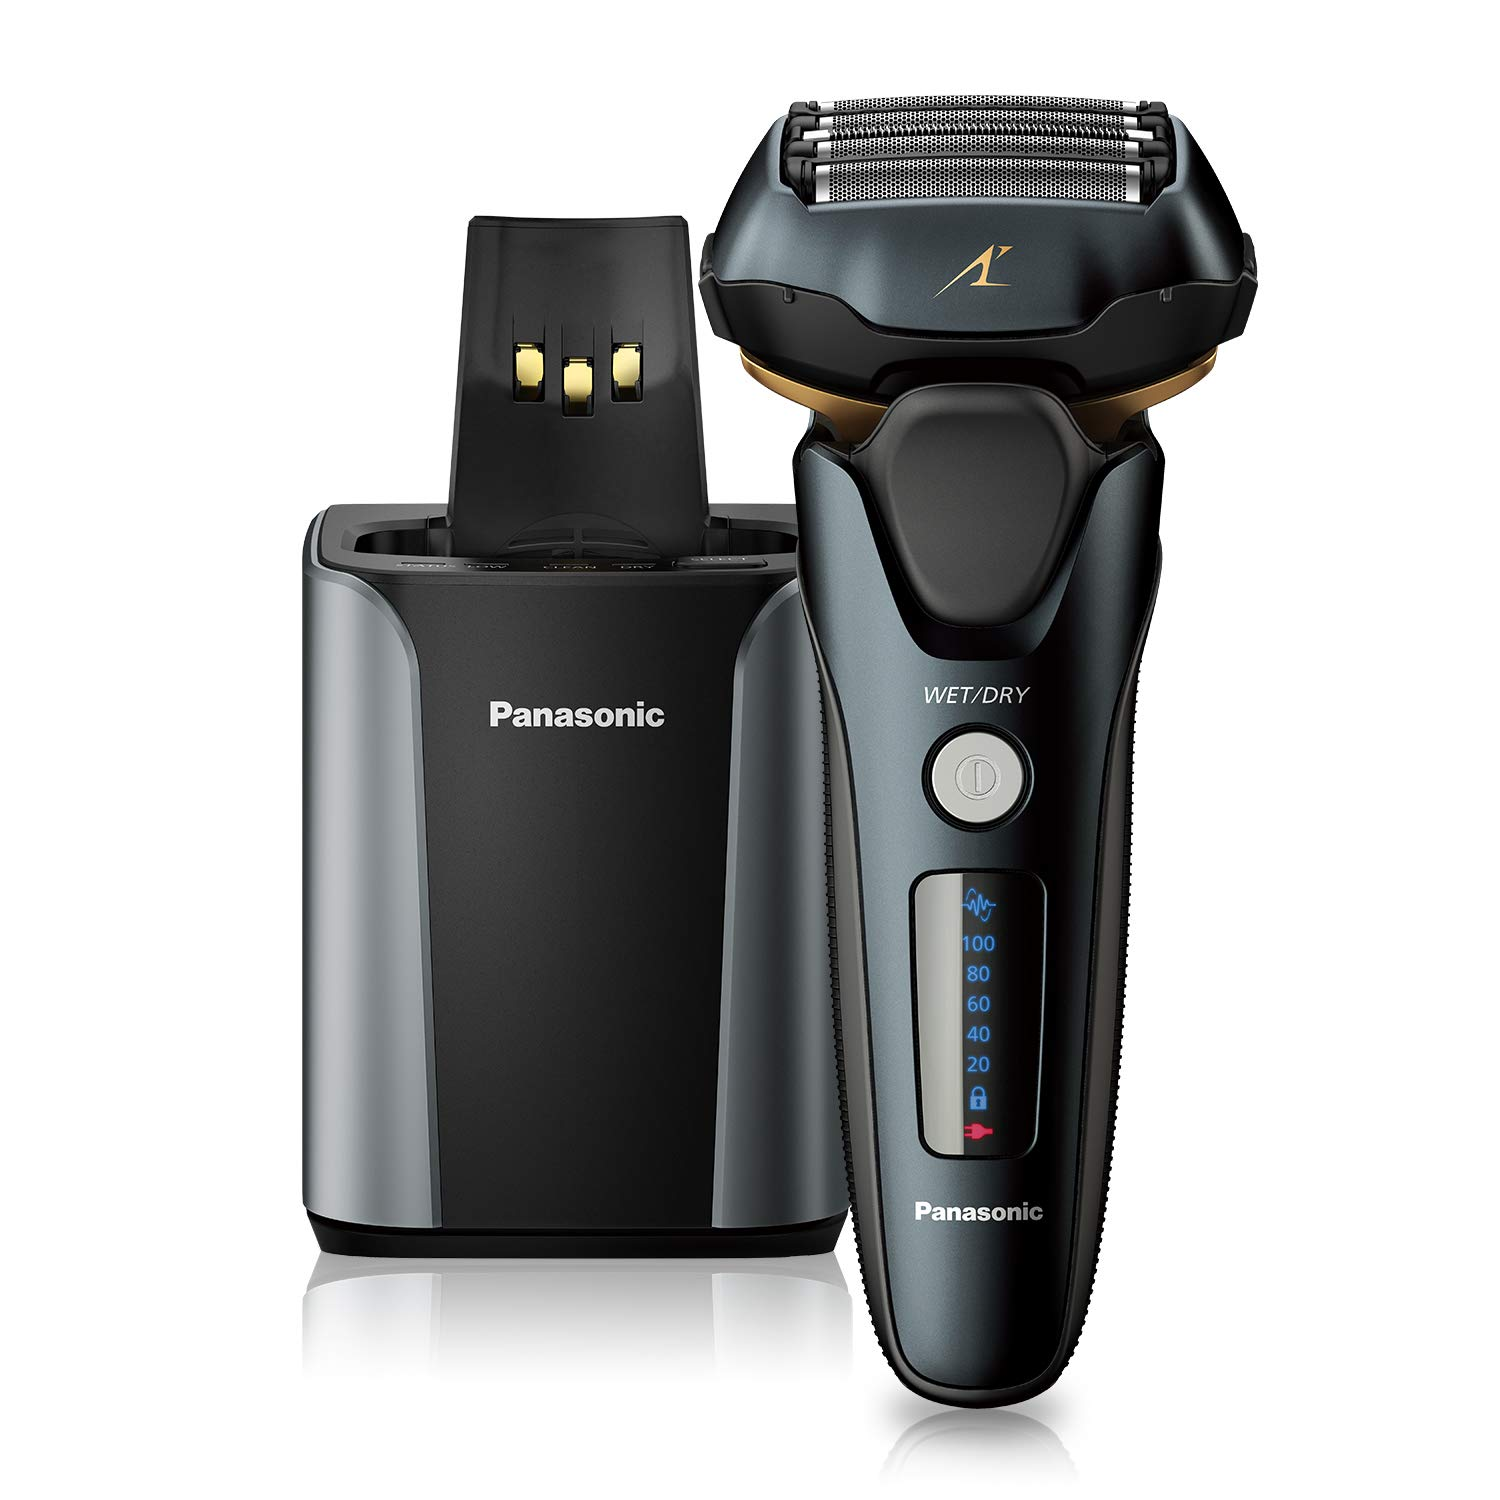 Panasonic Arc5 wet/Dry Electric Shaver & Trimmer for Men, 16-D Flexible Pivoting Head & Auto Cleaning & Charging System, ES-LV97-K, Black